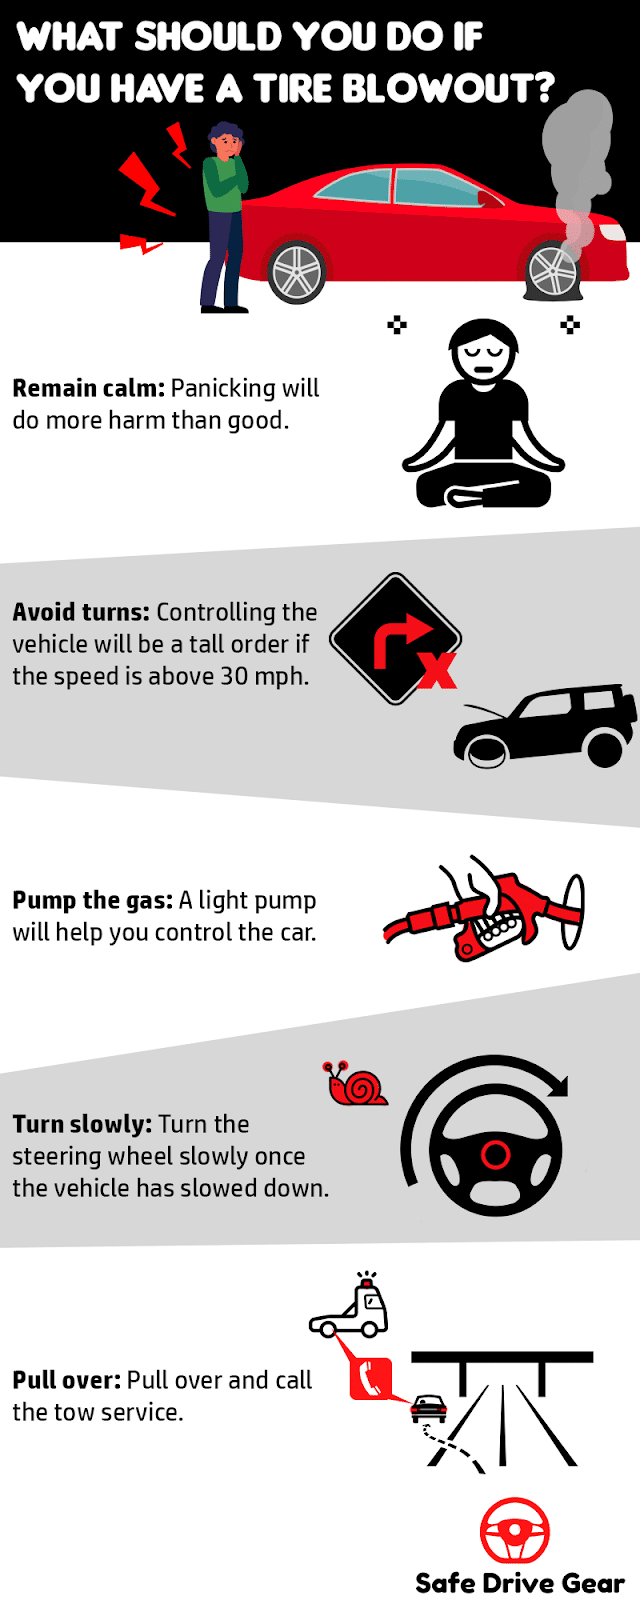 What should you do if you have a tire blowout